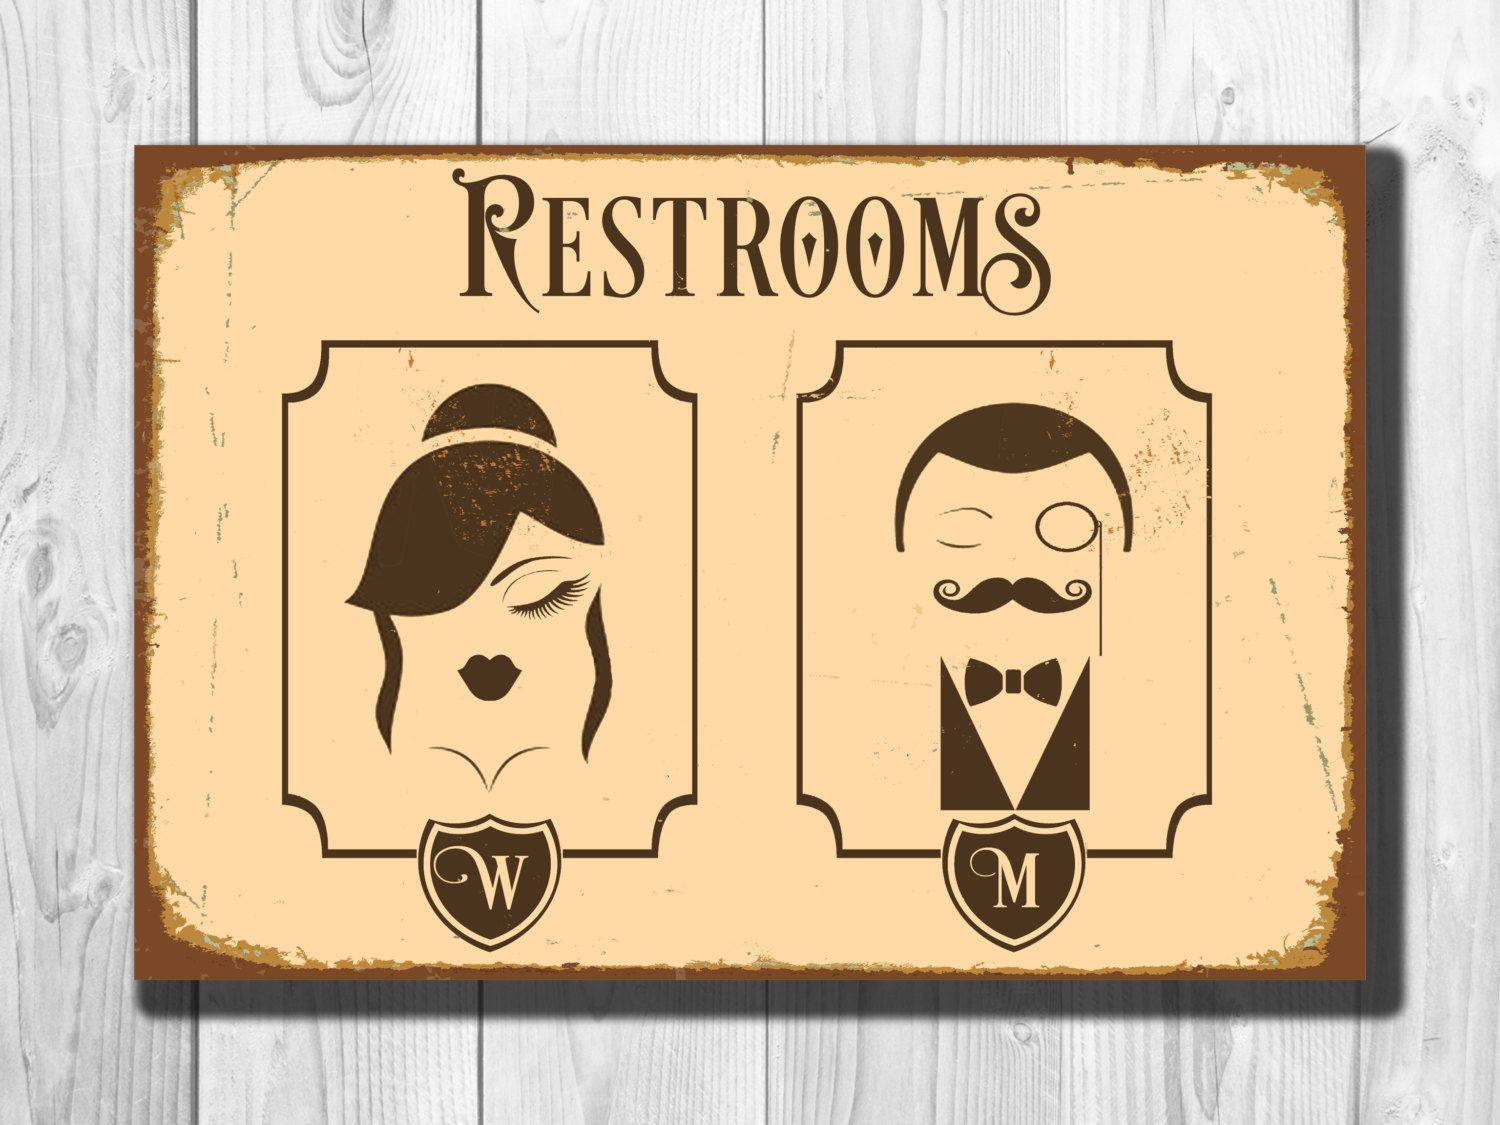 Charming Restrooms Sign   Vintage Style Aluminum Composite Metal Restroom Sign  Toilet Sign Male Female Restrooms Sign WORLDWIDE SHIPPING By  ClassicMetalSigns On Etsy